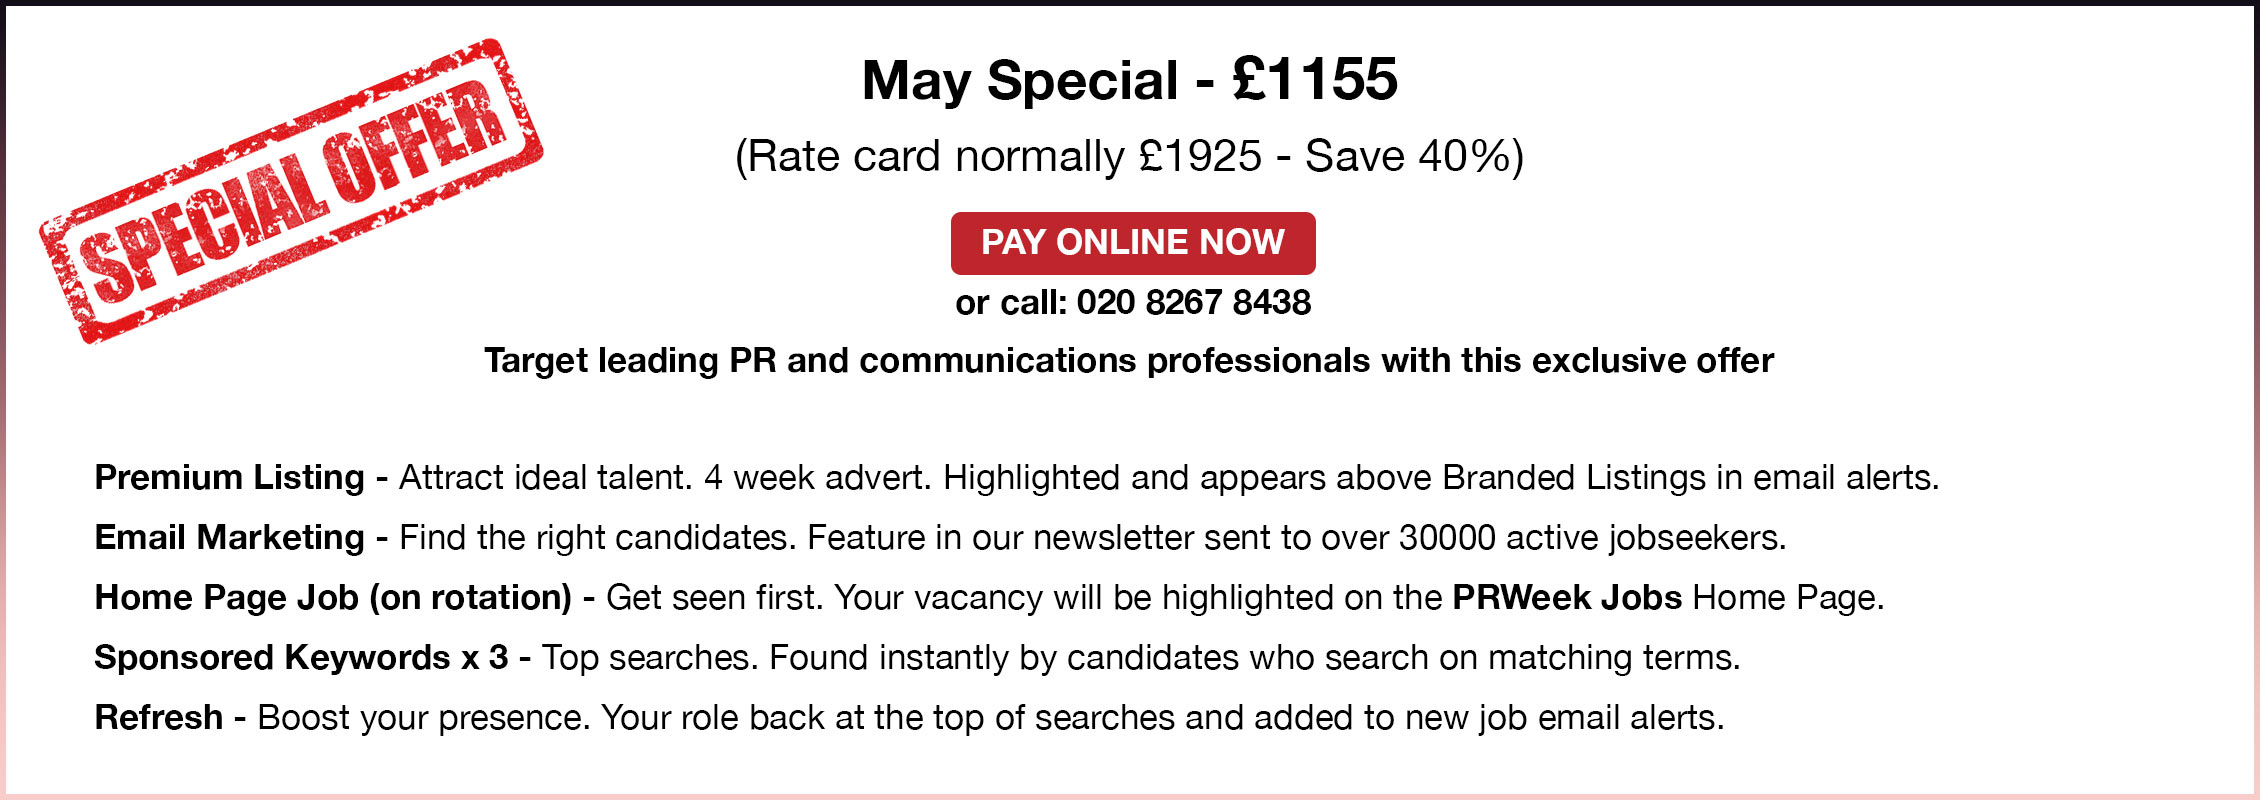 Special Offer. May Special - 1155.